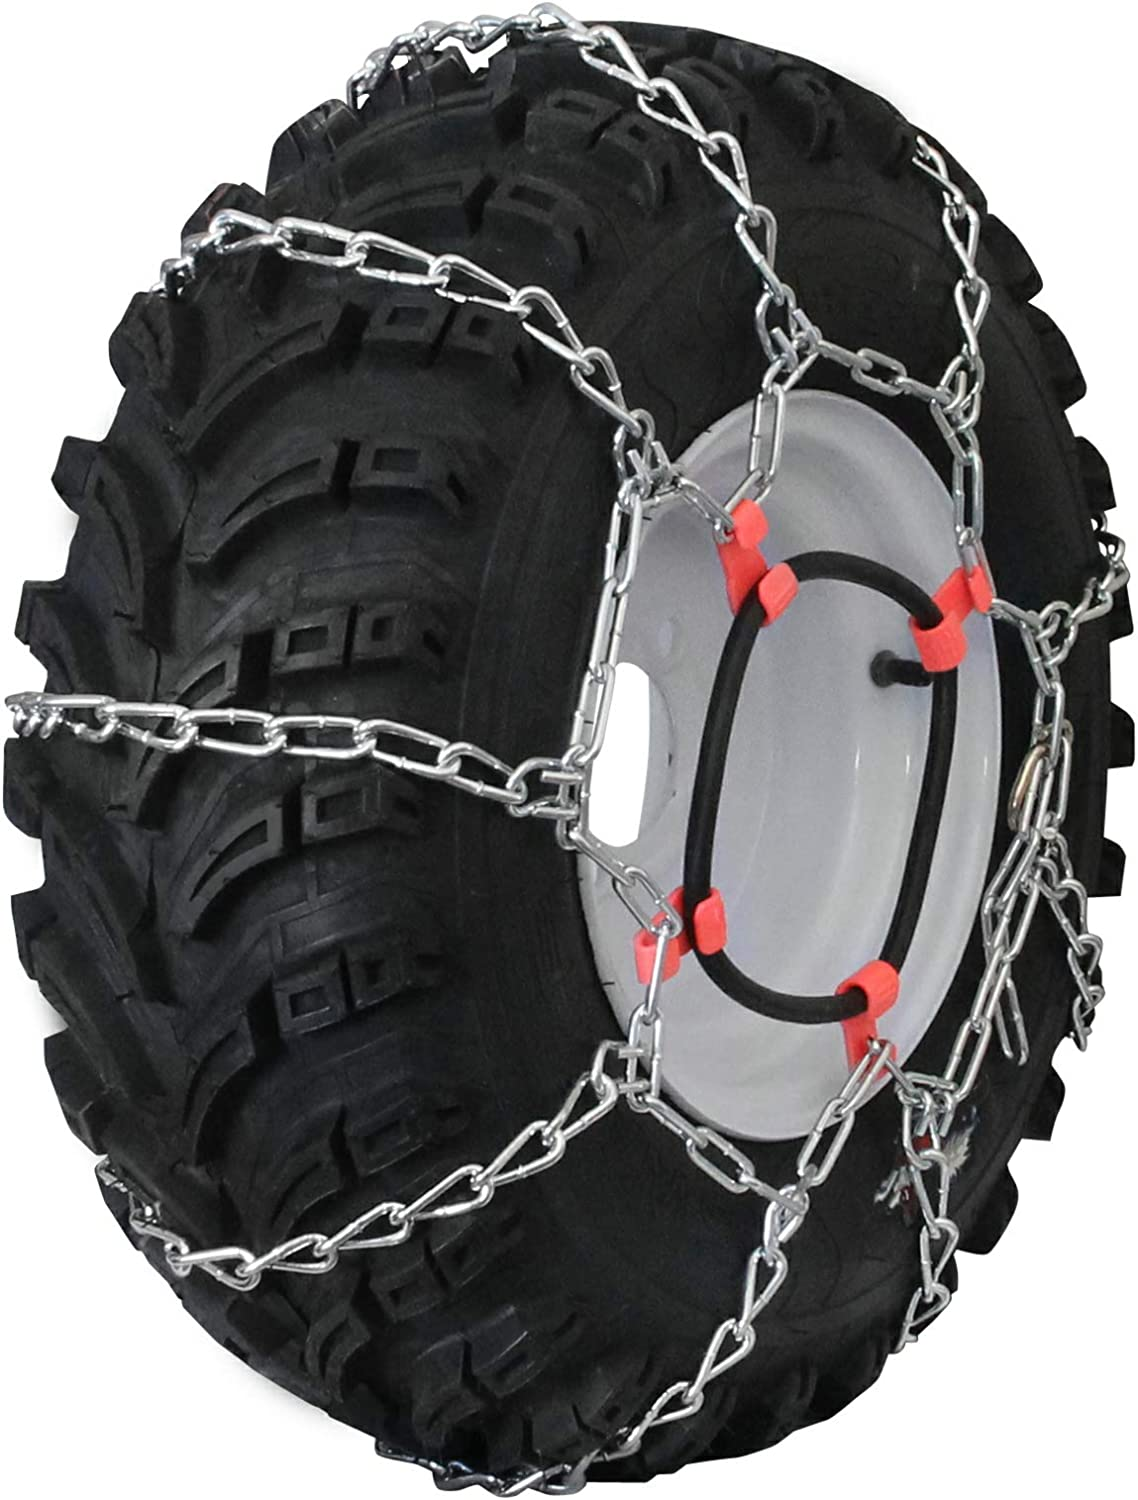 Grizzlar GTU-435 Garden Tractor 4 Link Ladder Alloy Tire Chains Tensioner Included 27x12.50-15 29x12.00-15